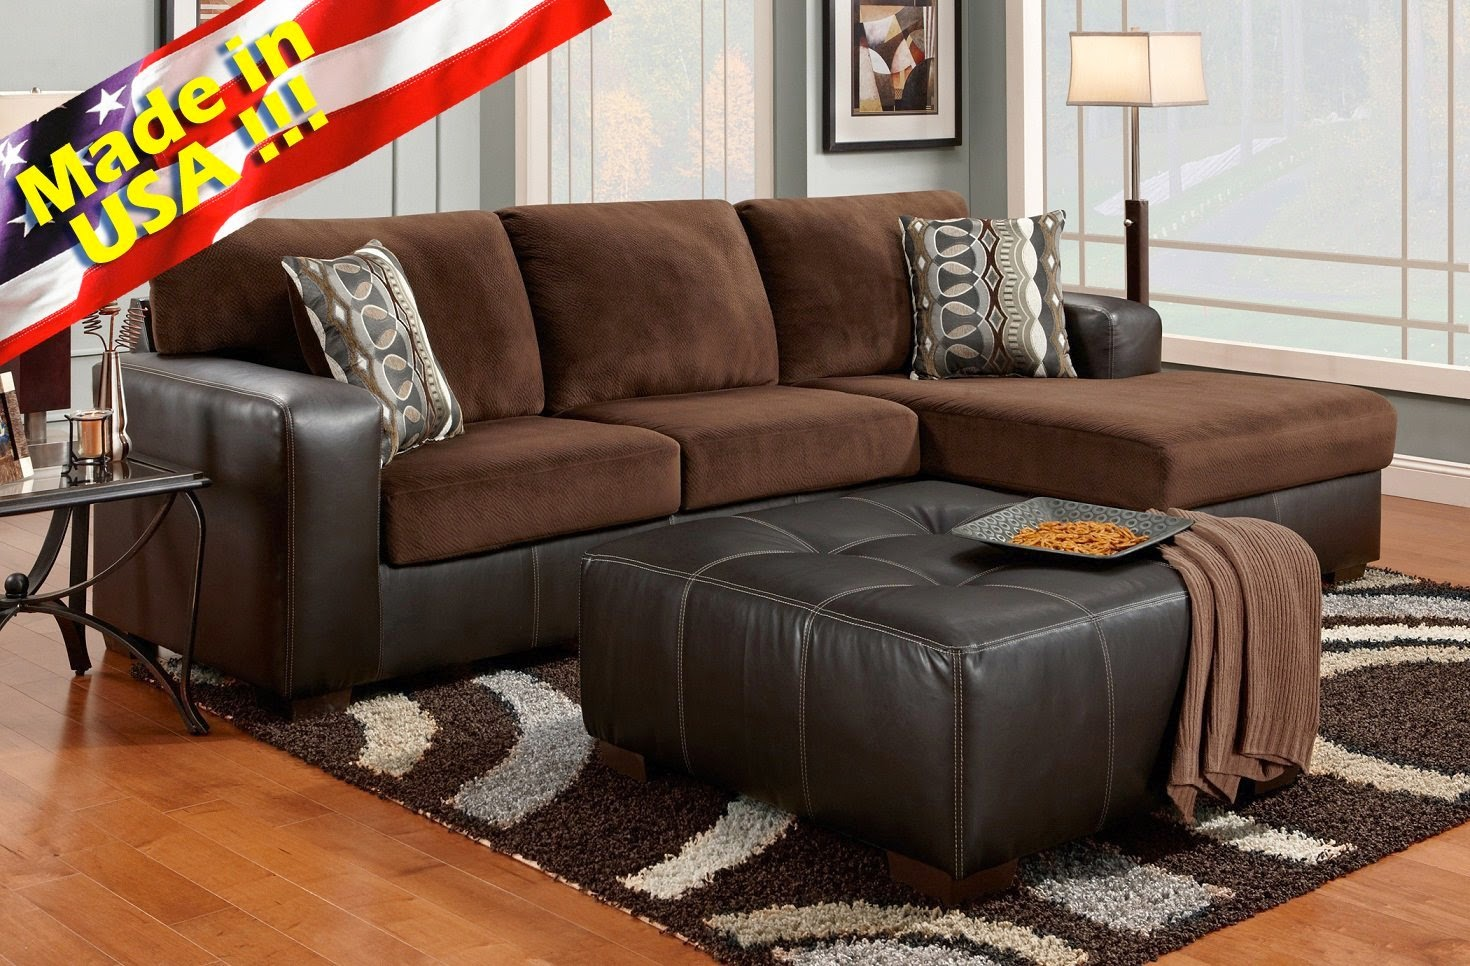 brown cumulus 2 toned sectional sofa chaise sets